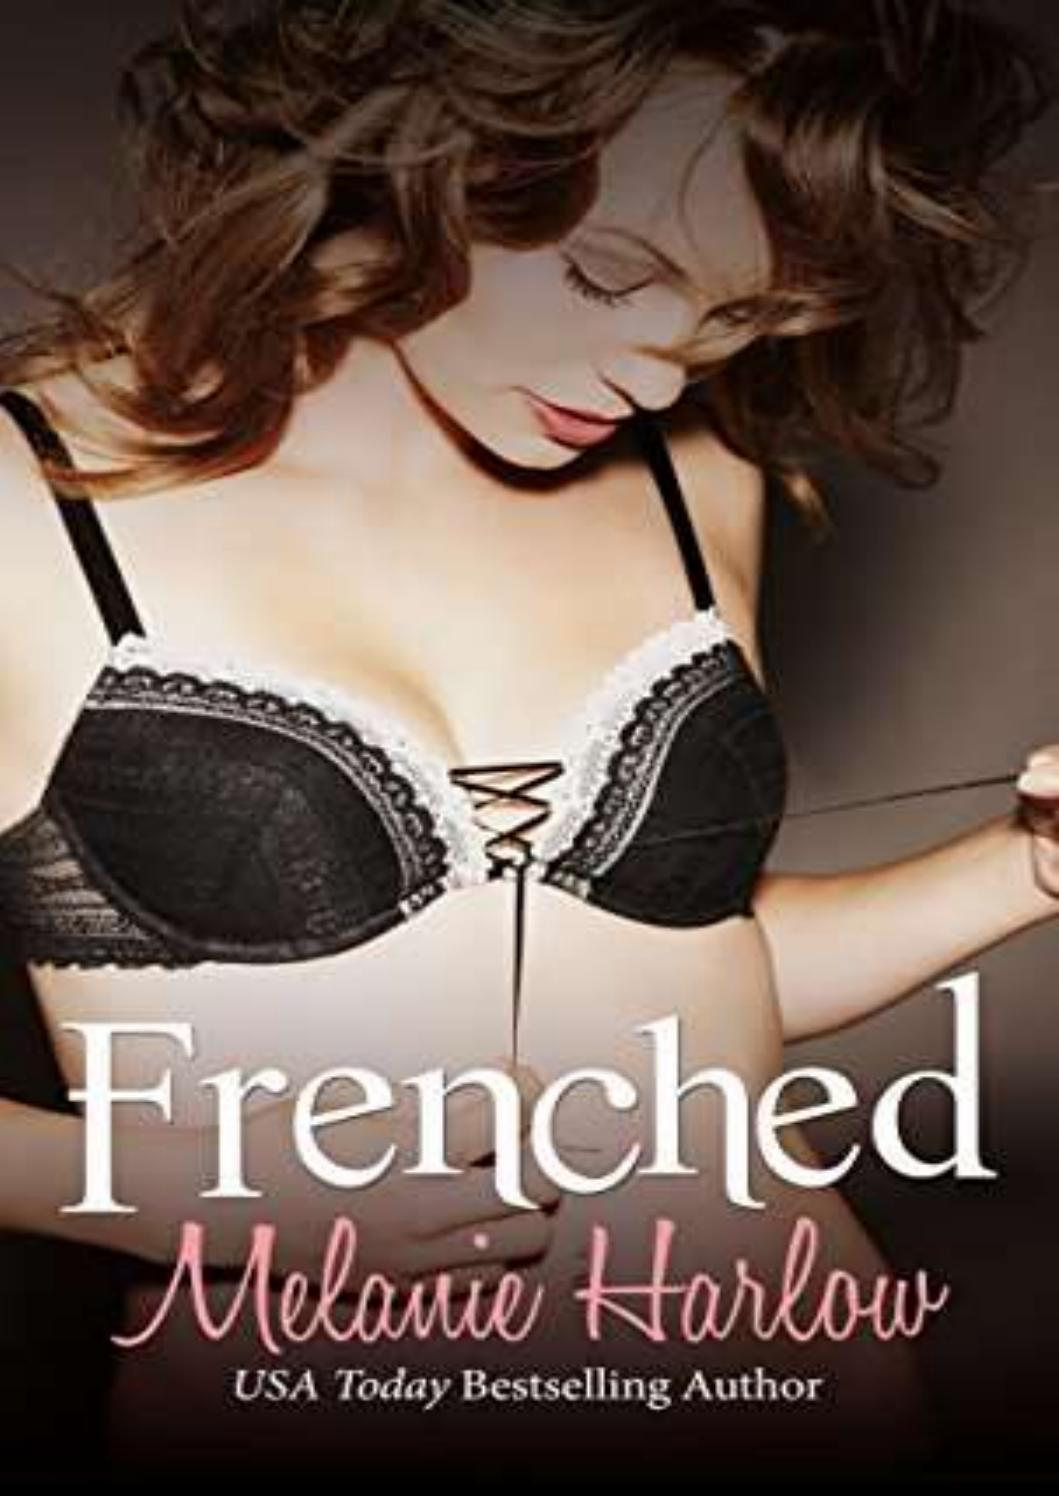 364234aa8 01 frenched série frenched 01 melanie harlow by Raquel Gois - issuu